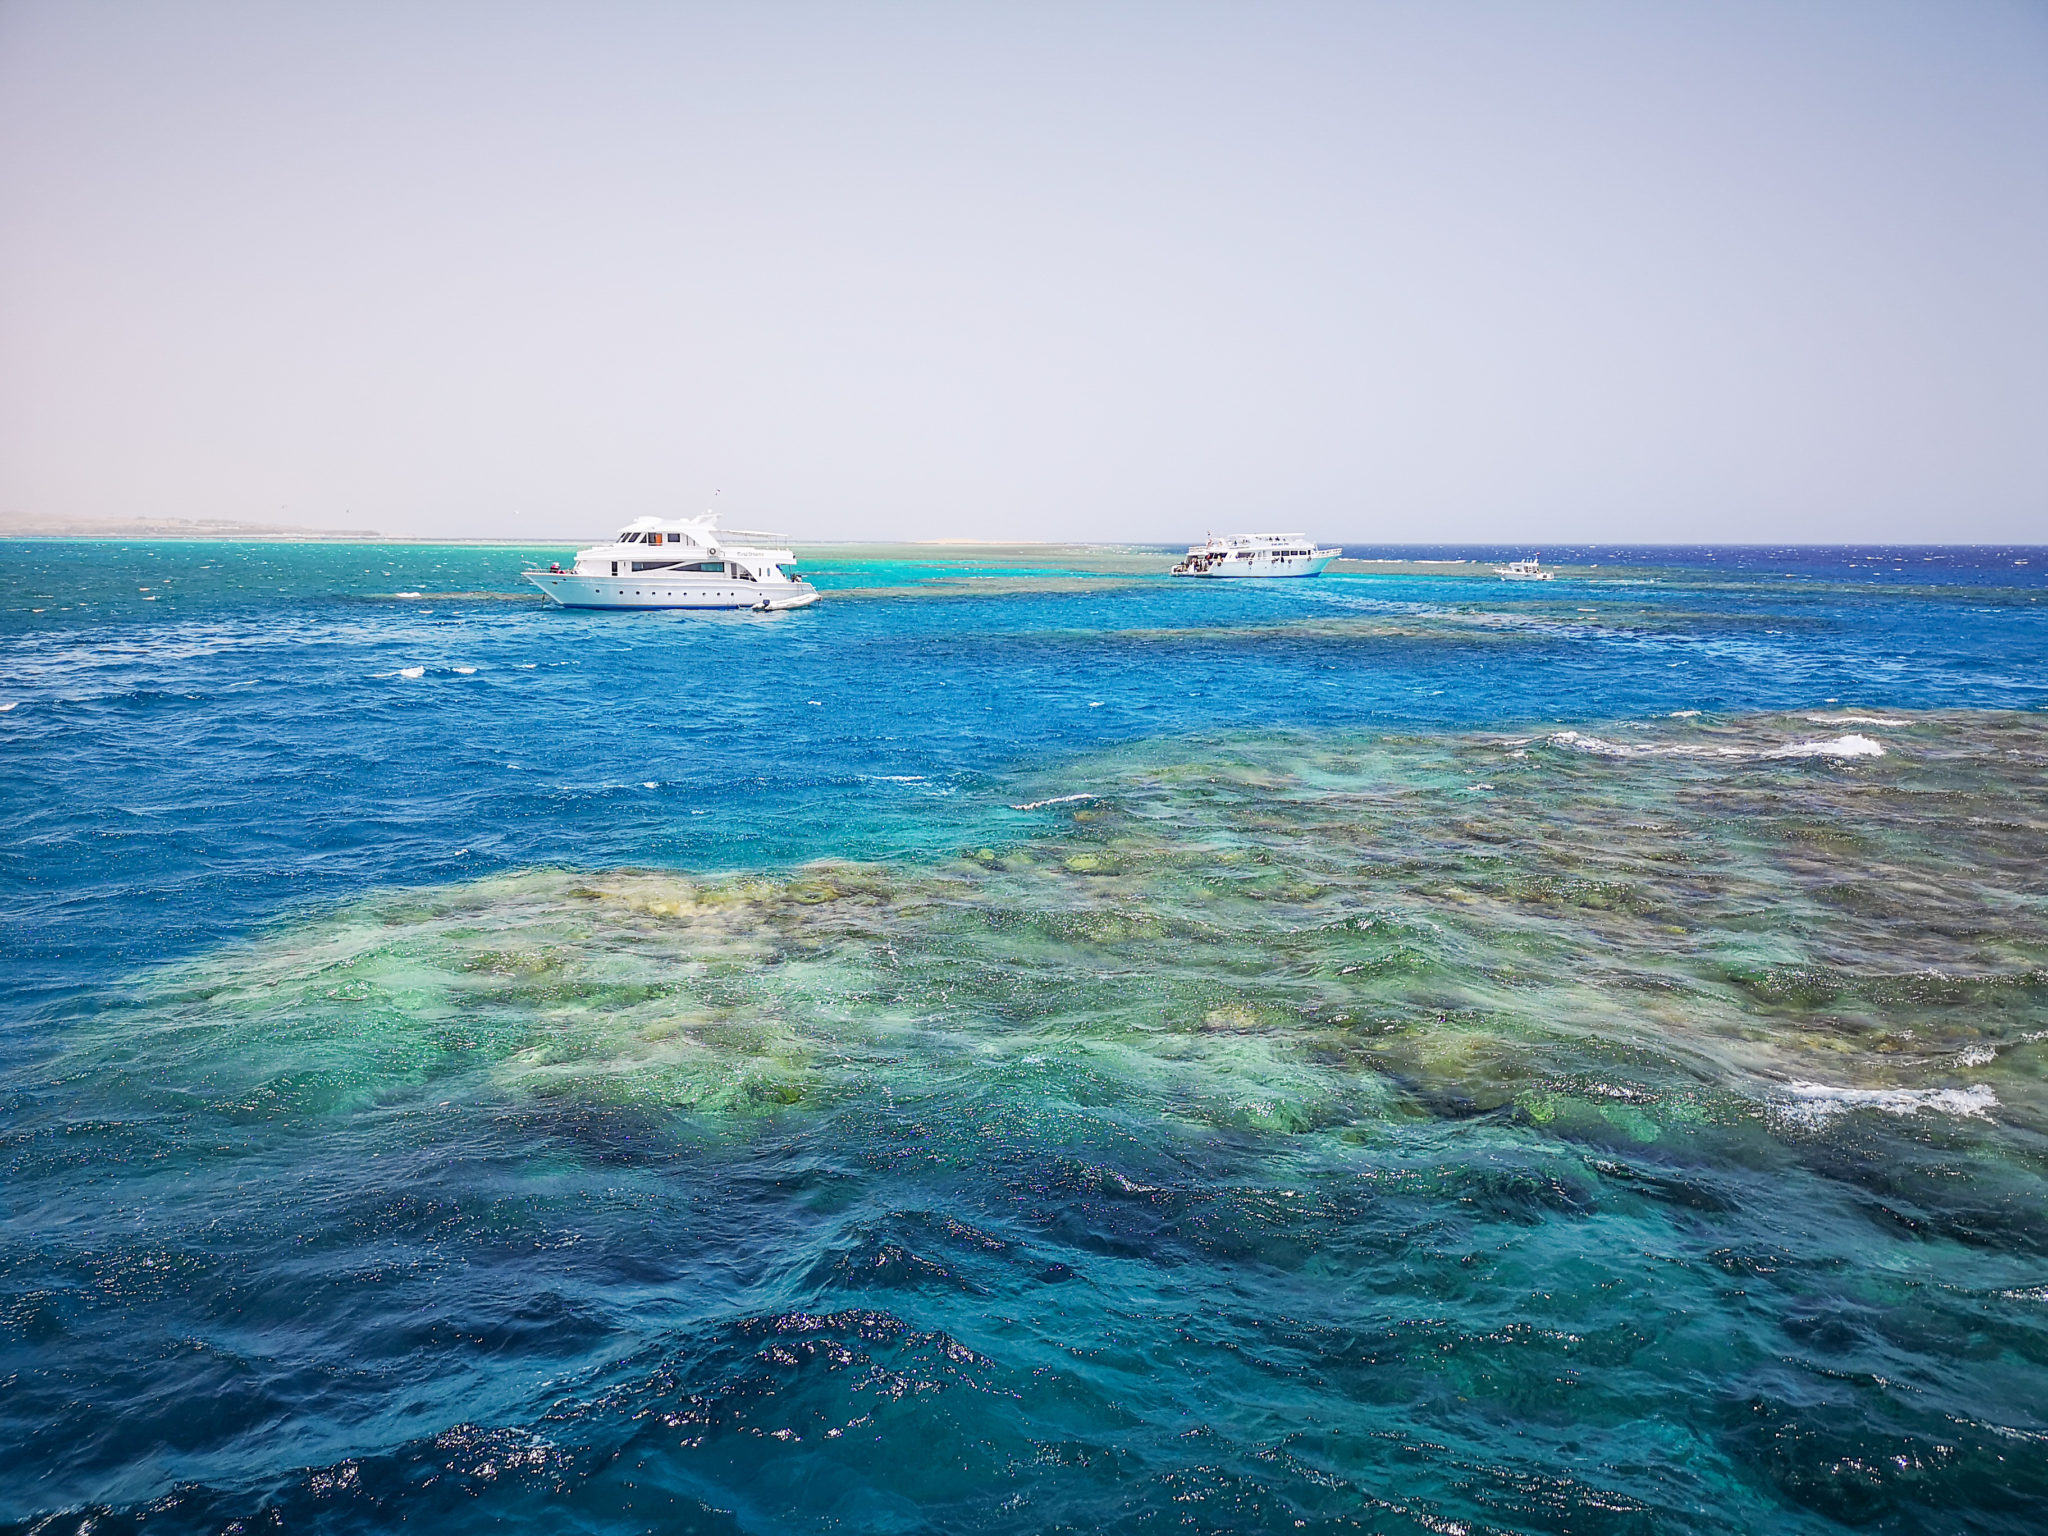 best egypt travel guide amazing diving sites near Hurghada, coral reefs